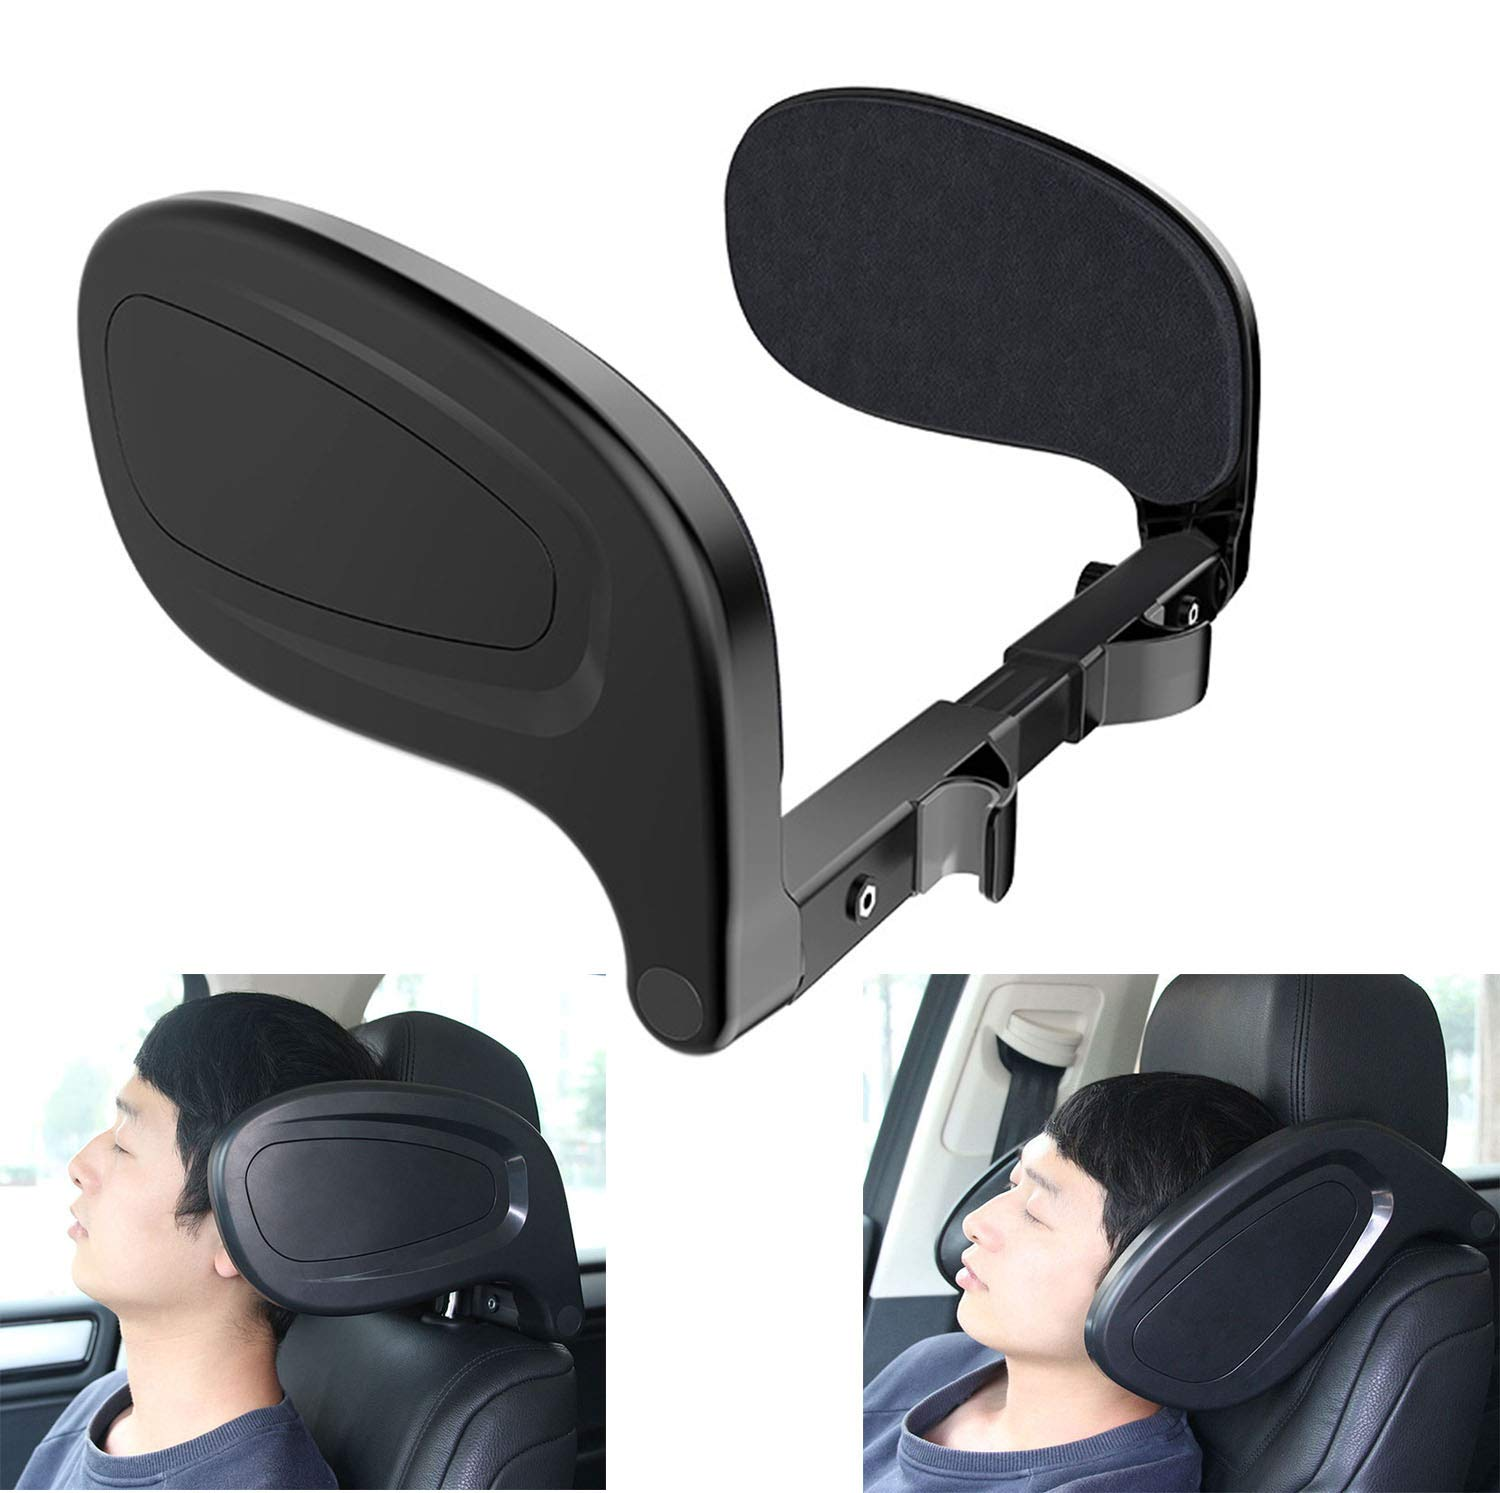 YQJ Car car Side Sleeping headrest Bracket Child seat Sleeping Pillow Neck seat headrest Travel headrest U-Shaped Ergonomic Best Neck Support Solution for Children and Adults